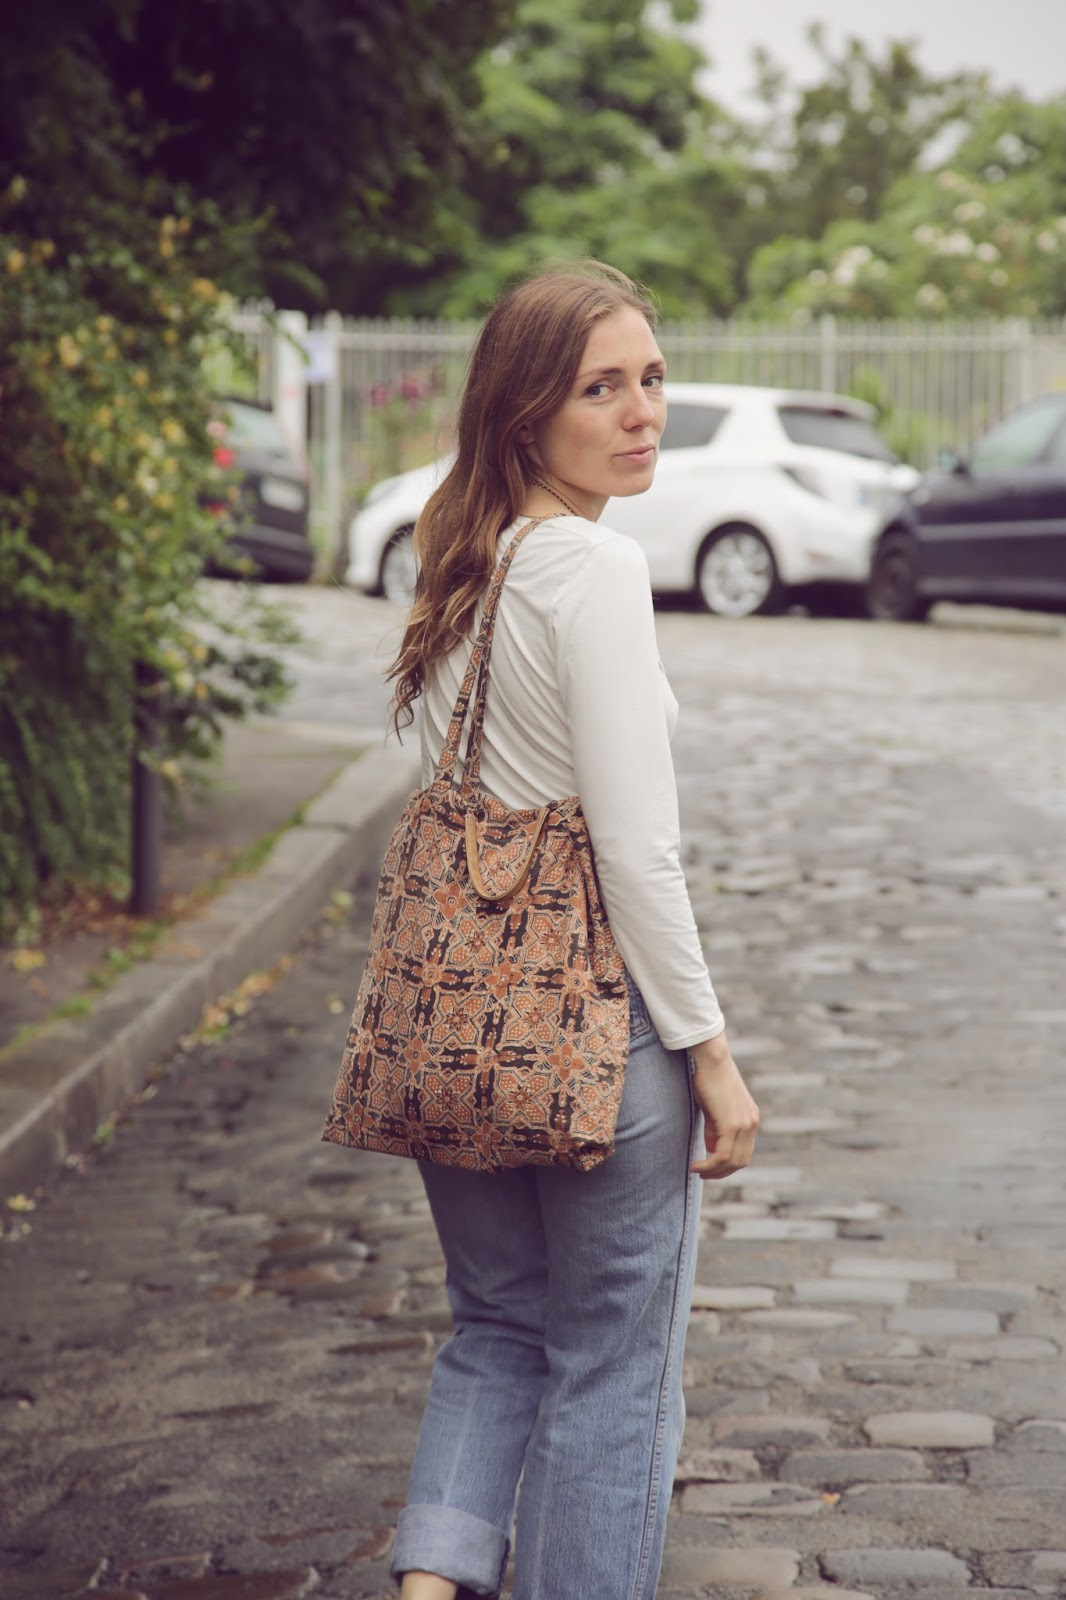 Ethical, handmade totes by Leotie Lovely